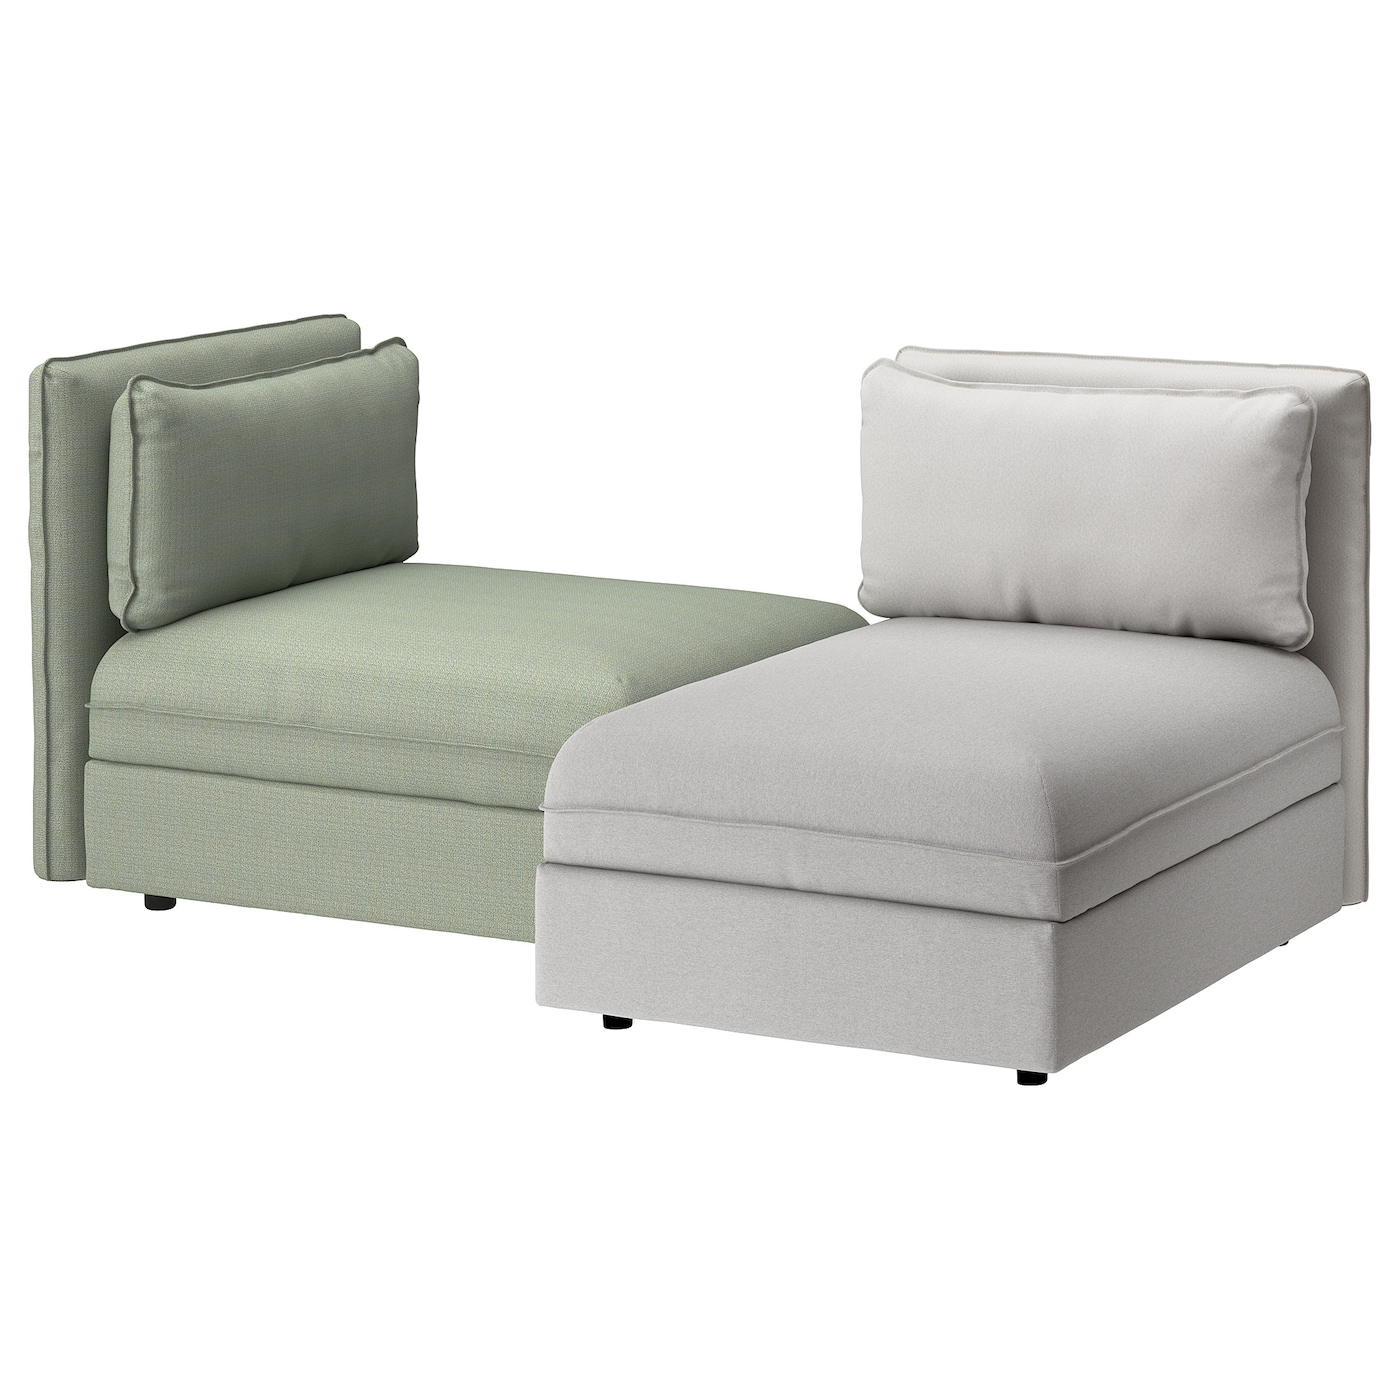 vallentuna canap 2 places orrsta gris clair hillared vert ikea. Black Bedroom Furniture Sets. Home Design Ideas